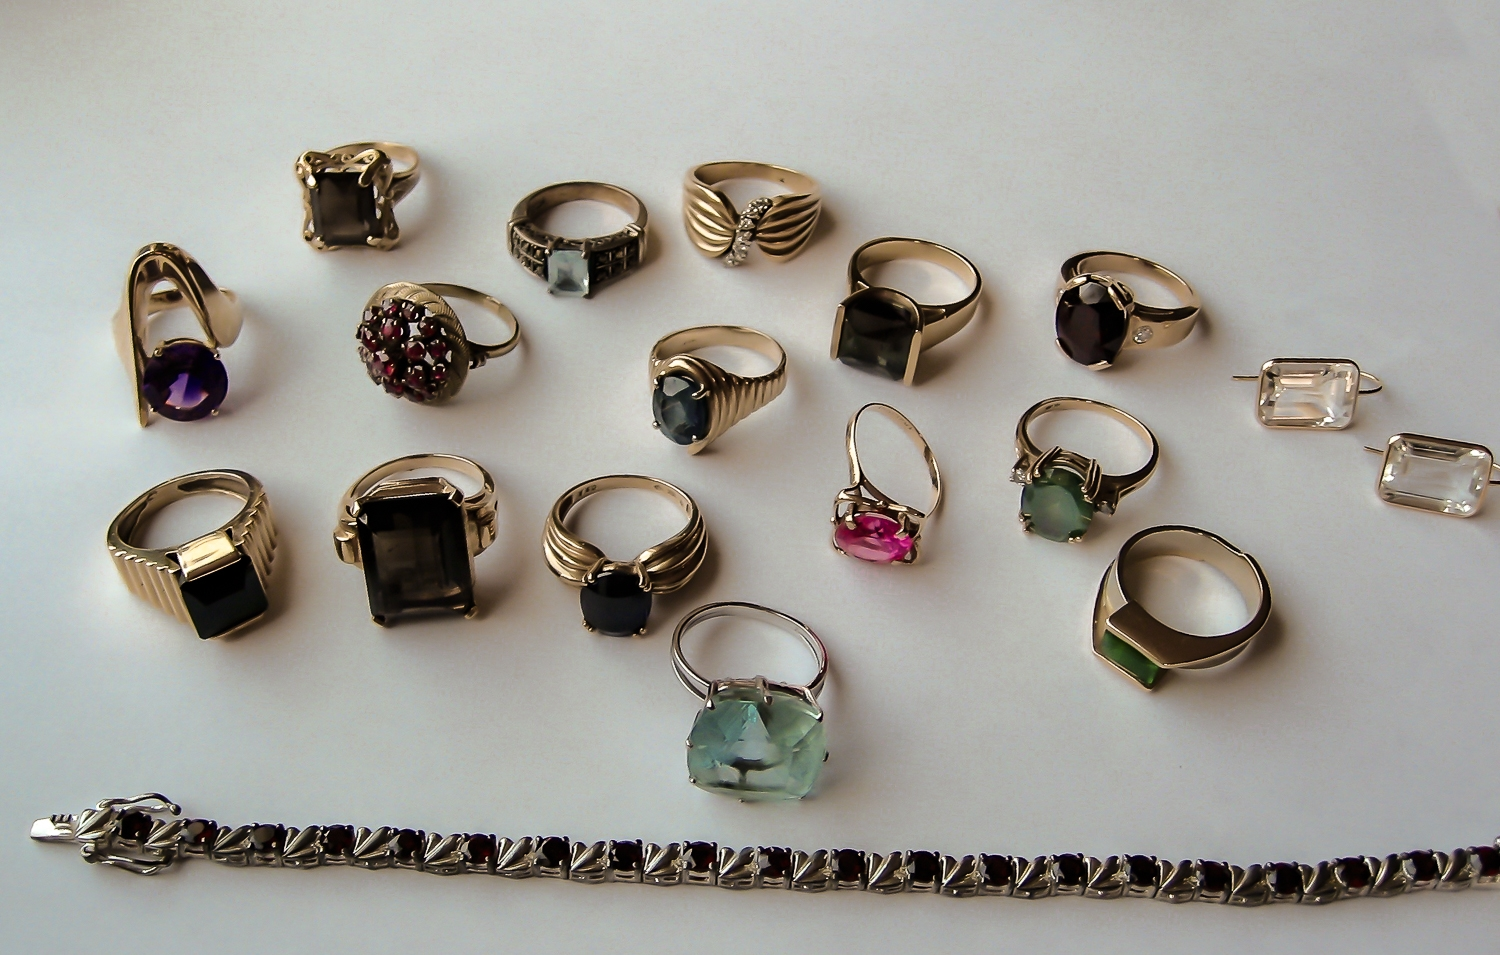 Collect all your old jewelry you would like to utilize.